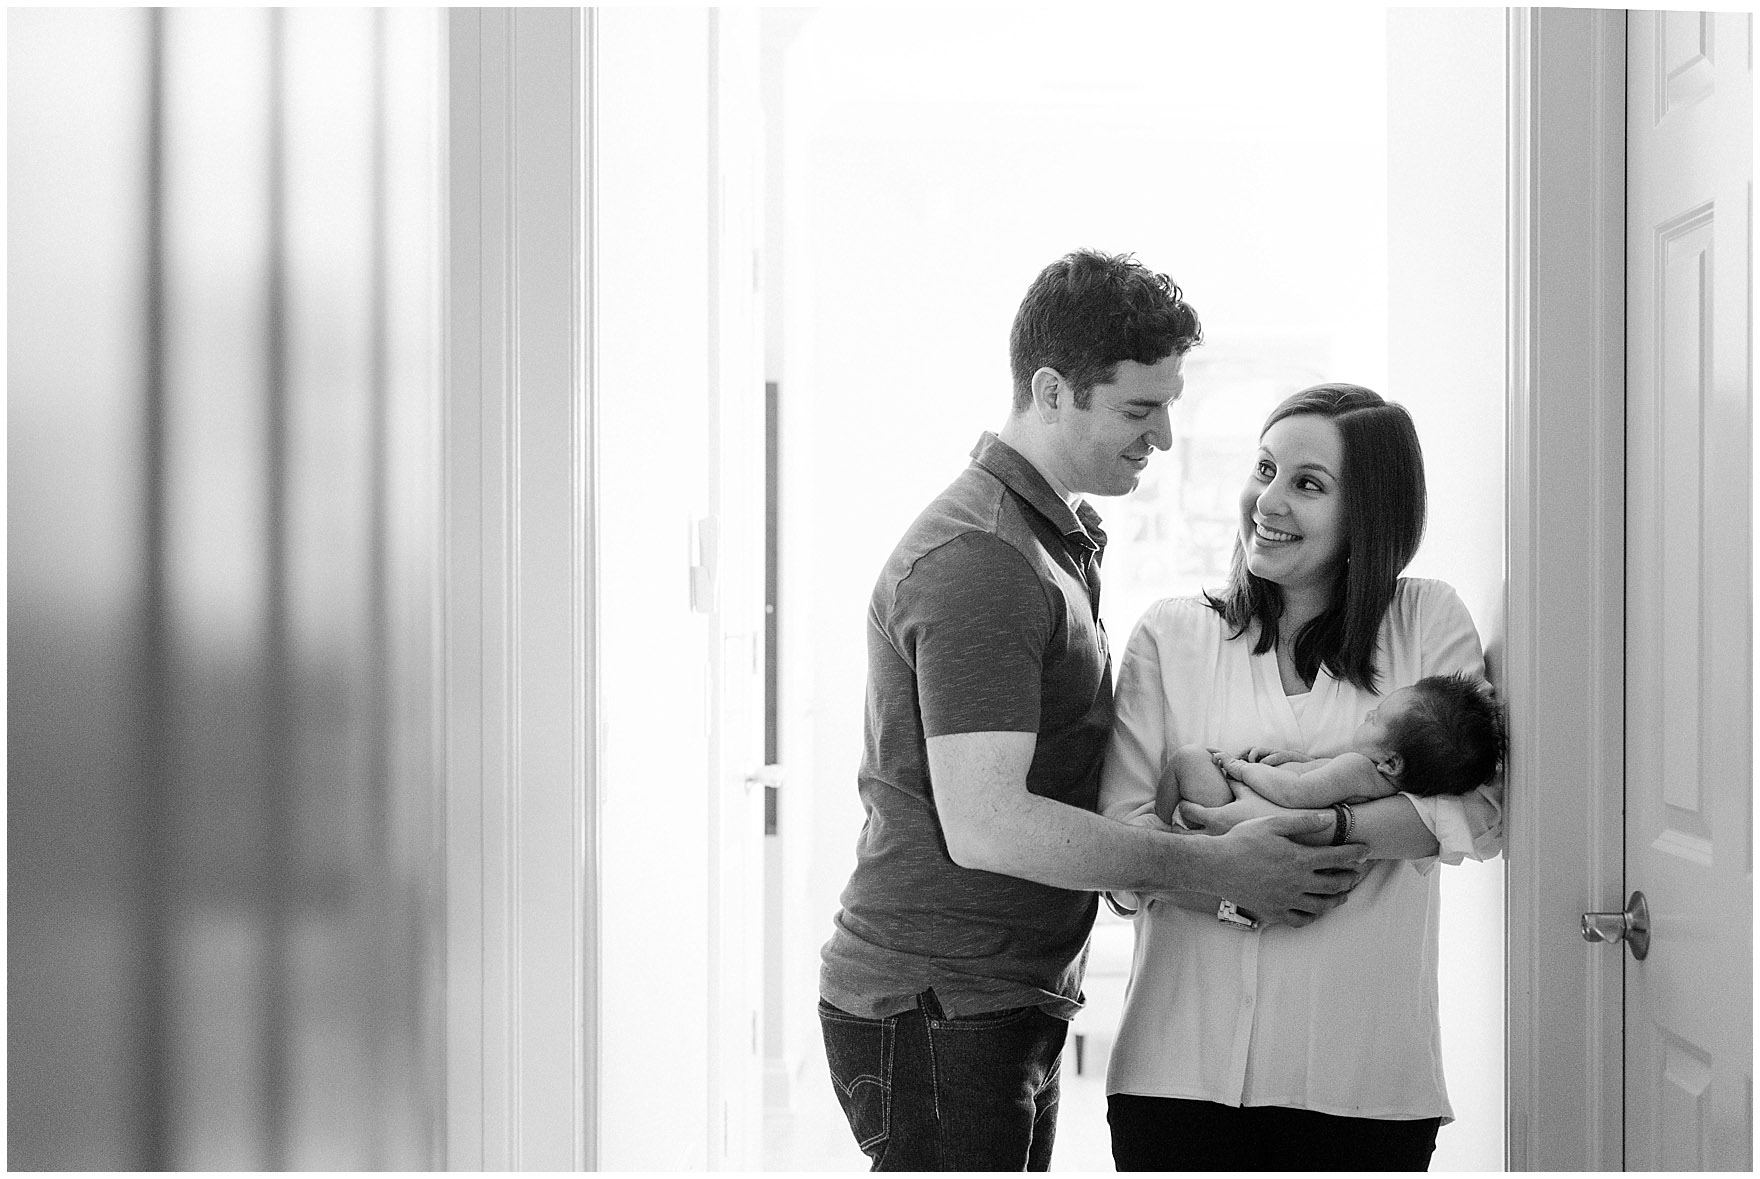 Mom and dad laugh during a Chicago newborn baby photography session.